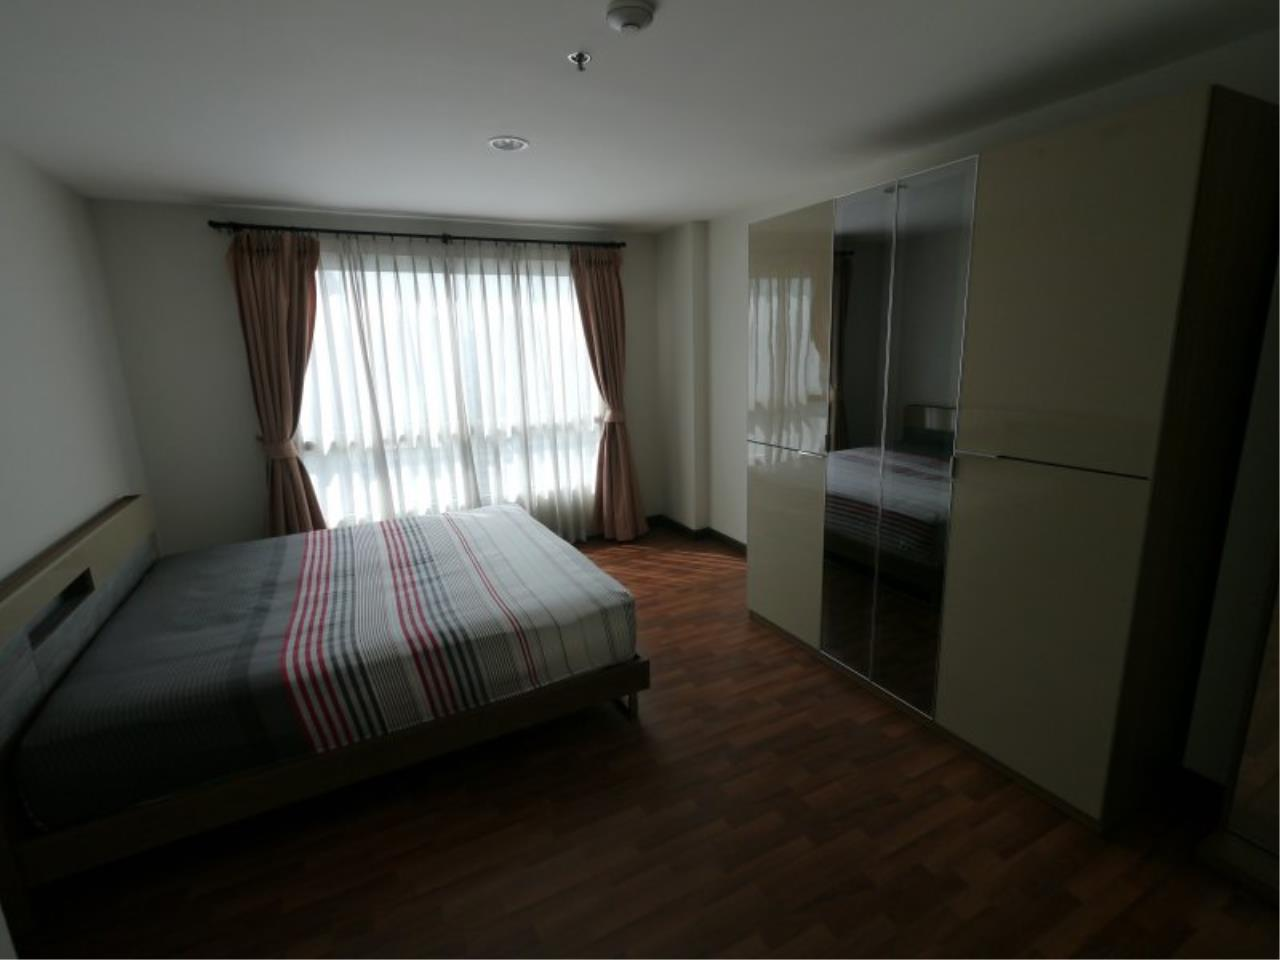 Piri Property Agency's Comfort 1 Bedroom in the Centric Scene Paholyothin 7 Condo for rent on high floor 1